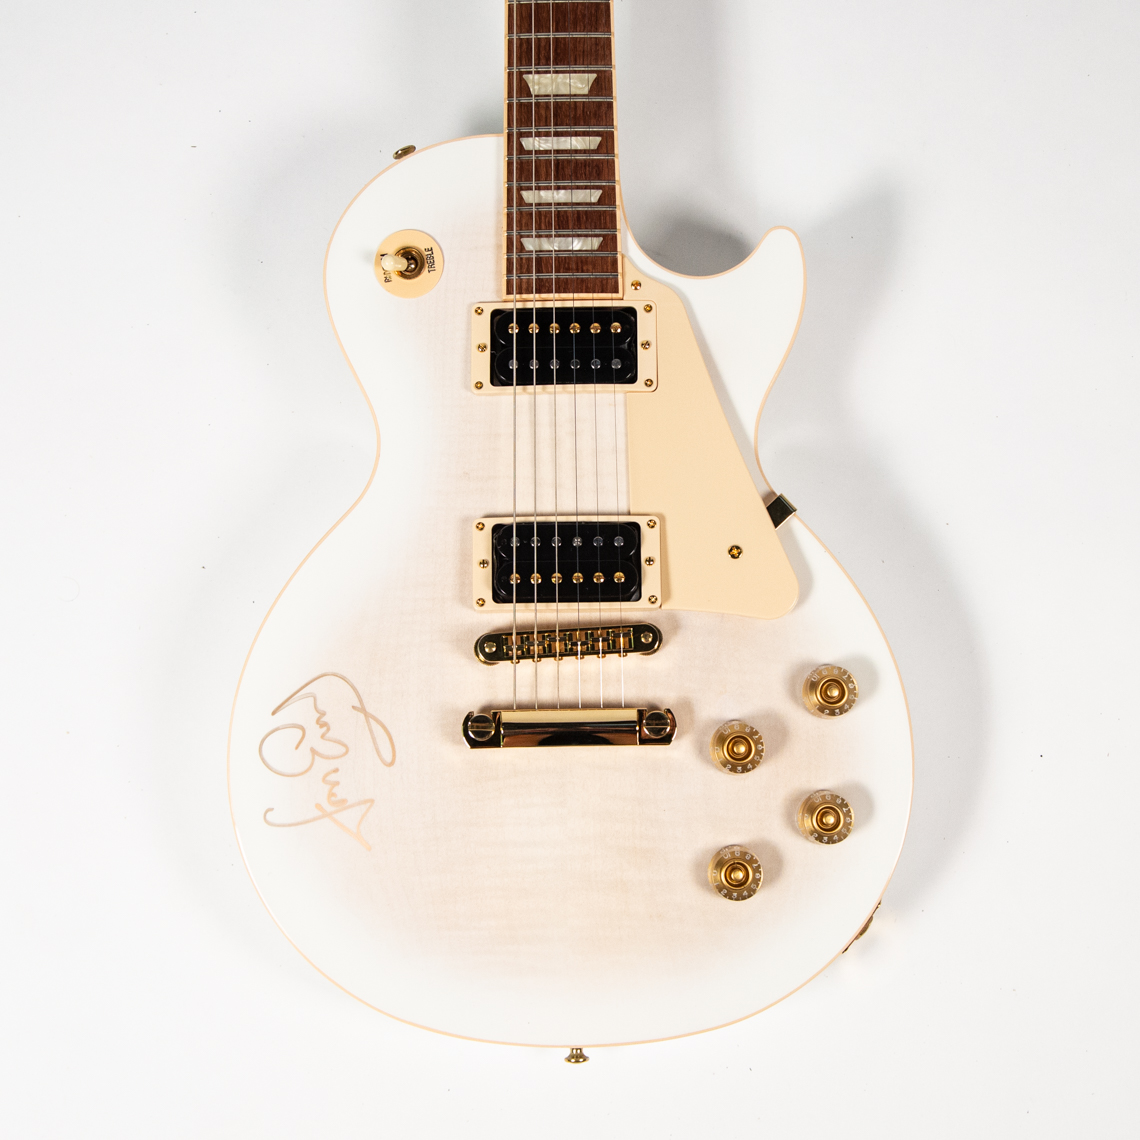 Gibson Les Paul Signature 'T' signed by The Everly Brothers' Don Everly